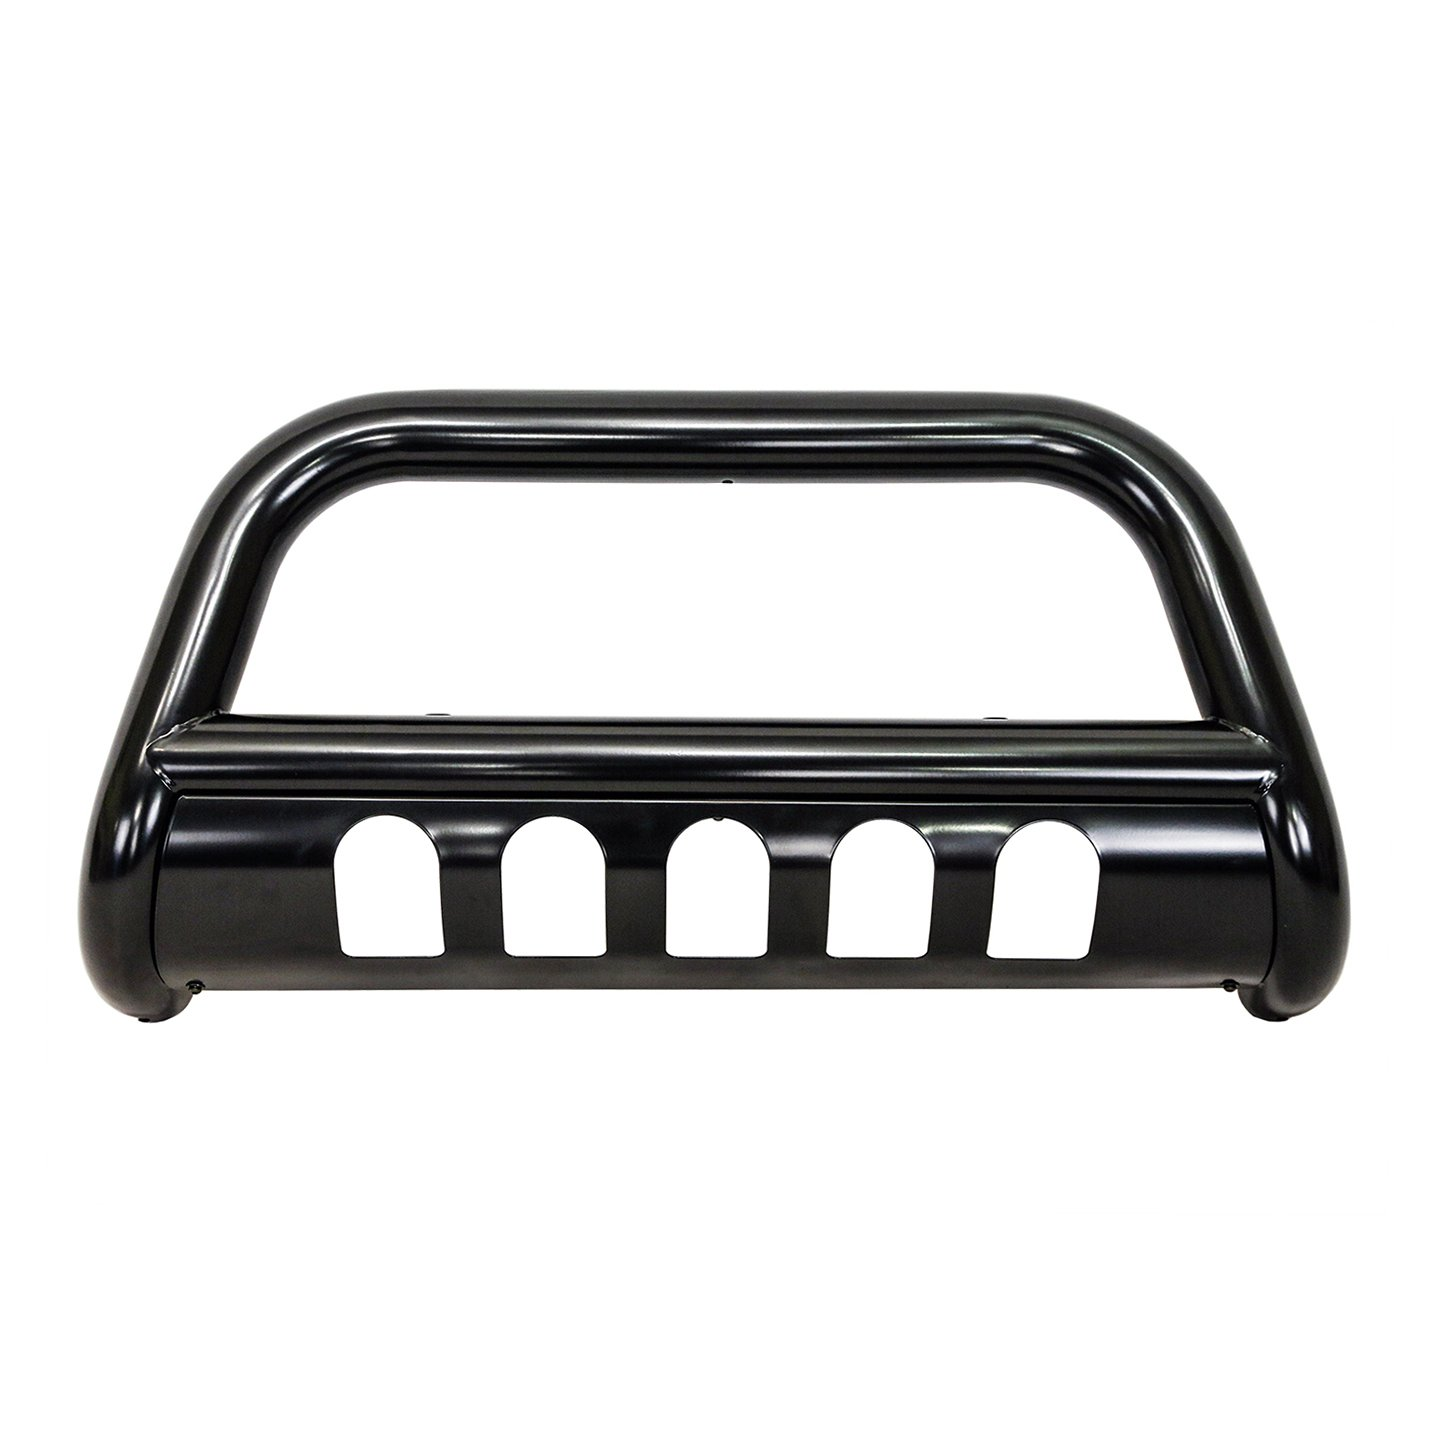 Galaxy Auto 3' Bull Bar for 2004-18 Ford F150 & 2003-17 Ford Expedition - Steel Bumper Grille Guard (Black)